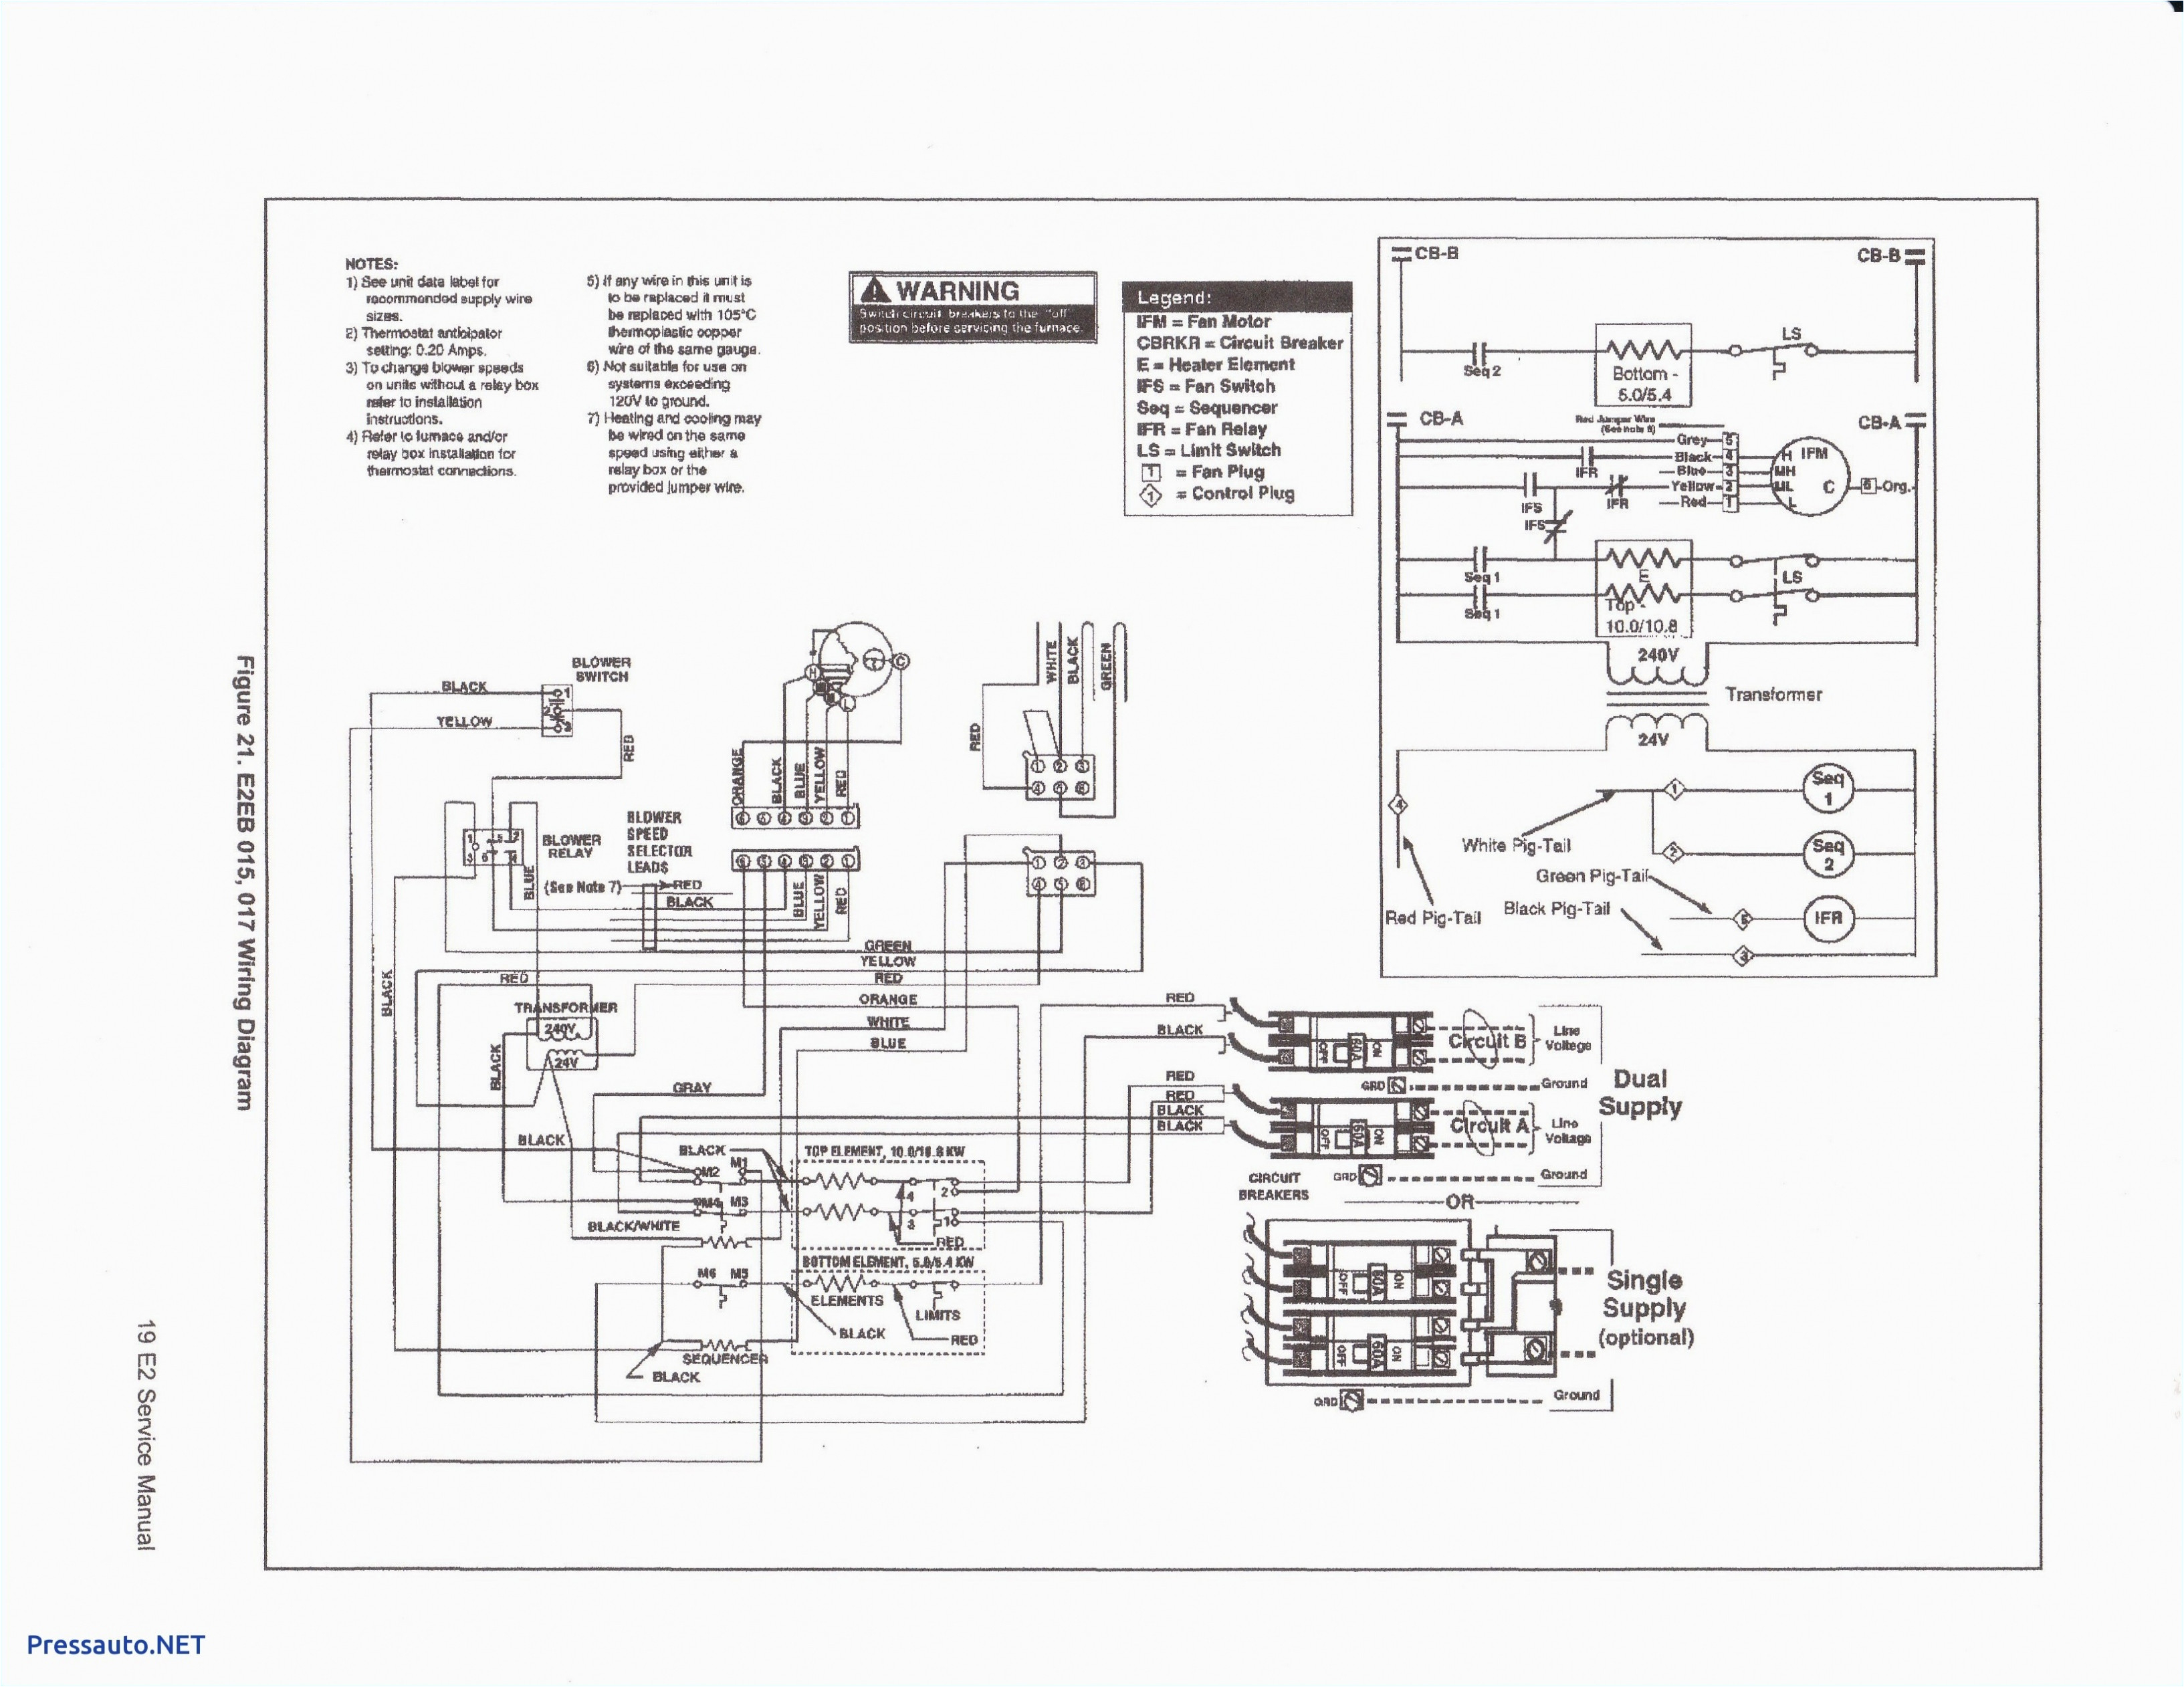 thermostat wiring diagram for nordyne a c wiring diagrams konsult heat pump air conditioner on nordyne heat